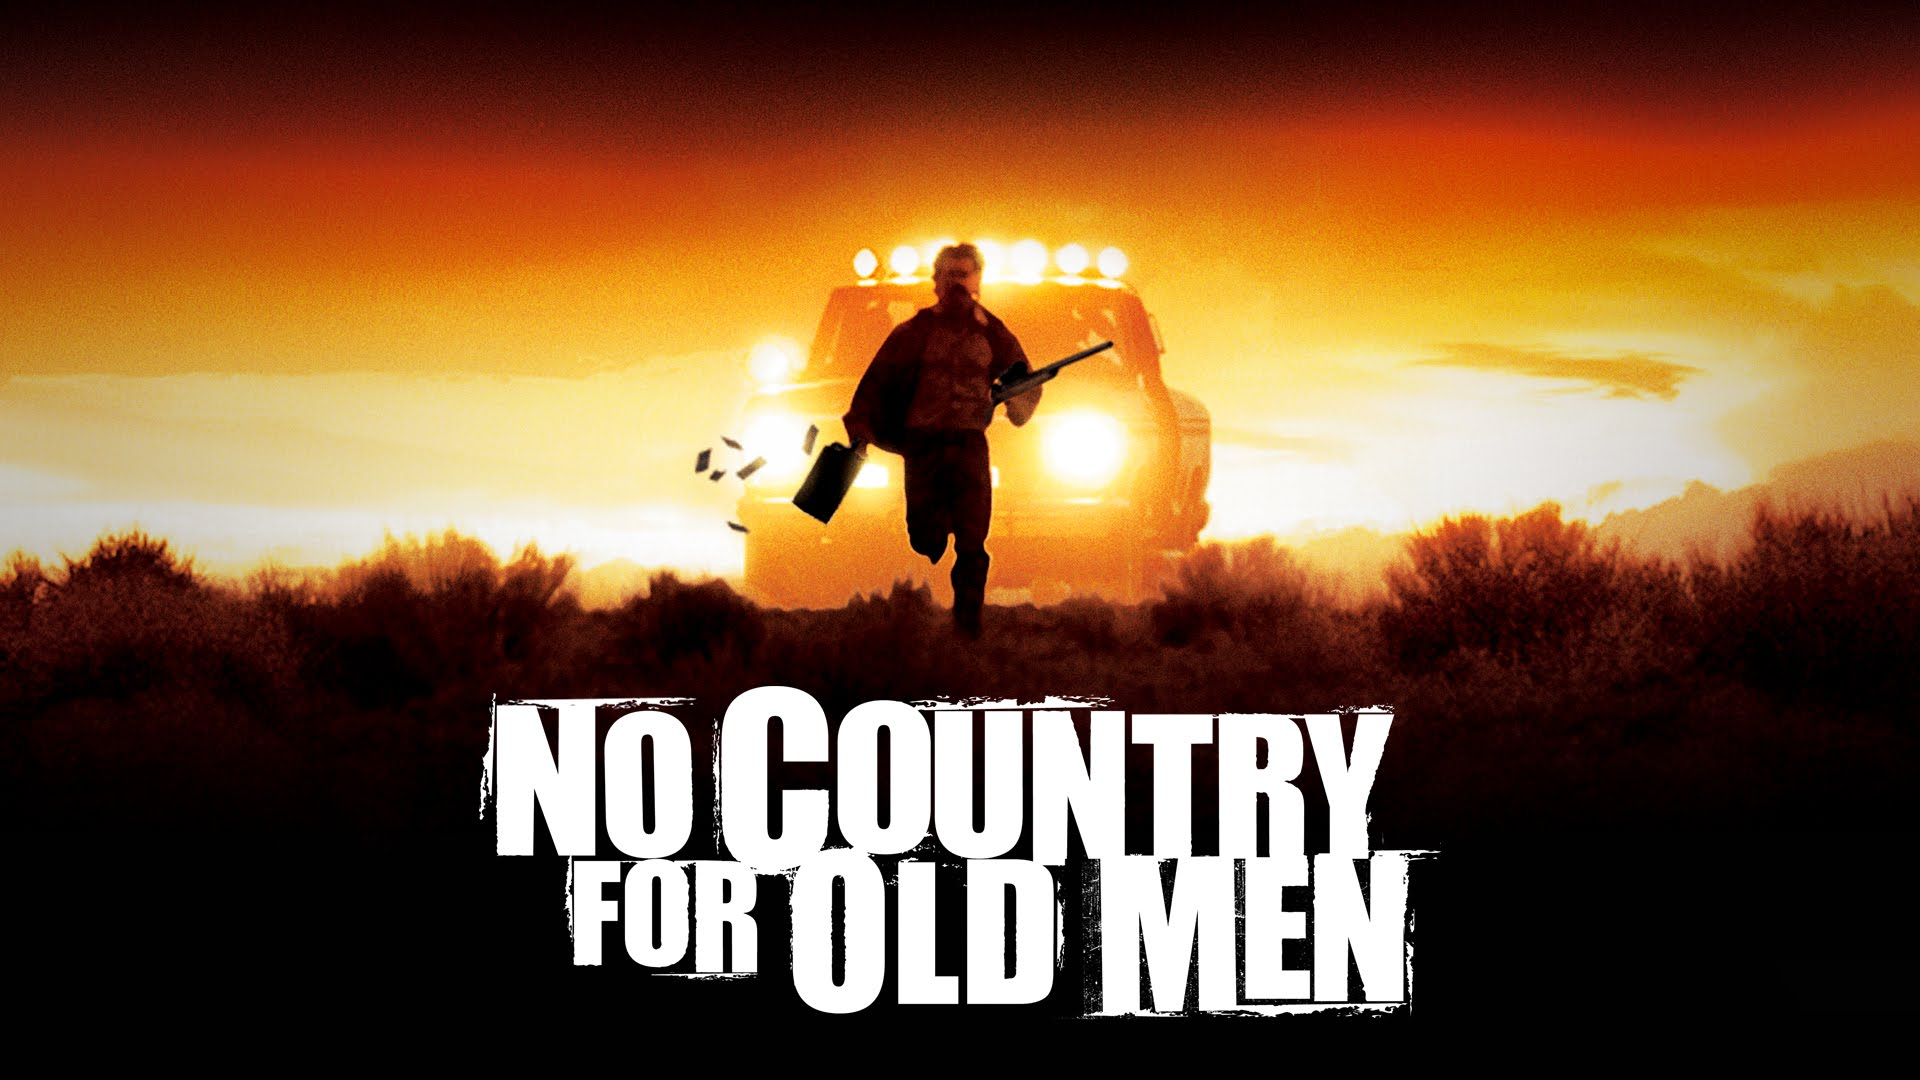 No Country For Old Men Santa Fe Network